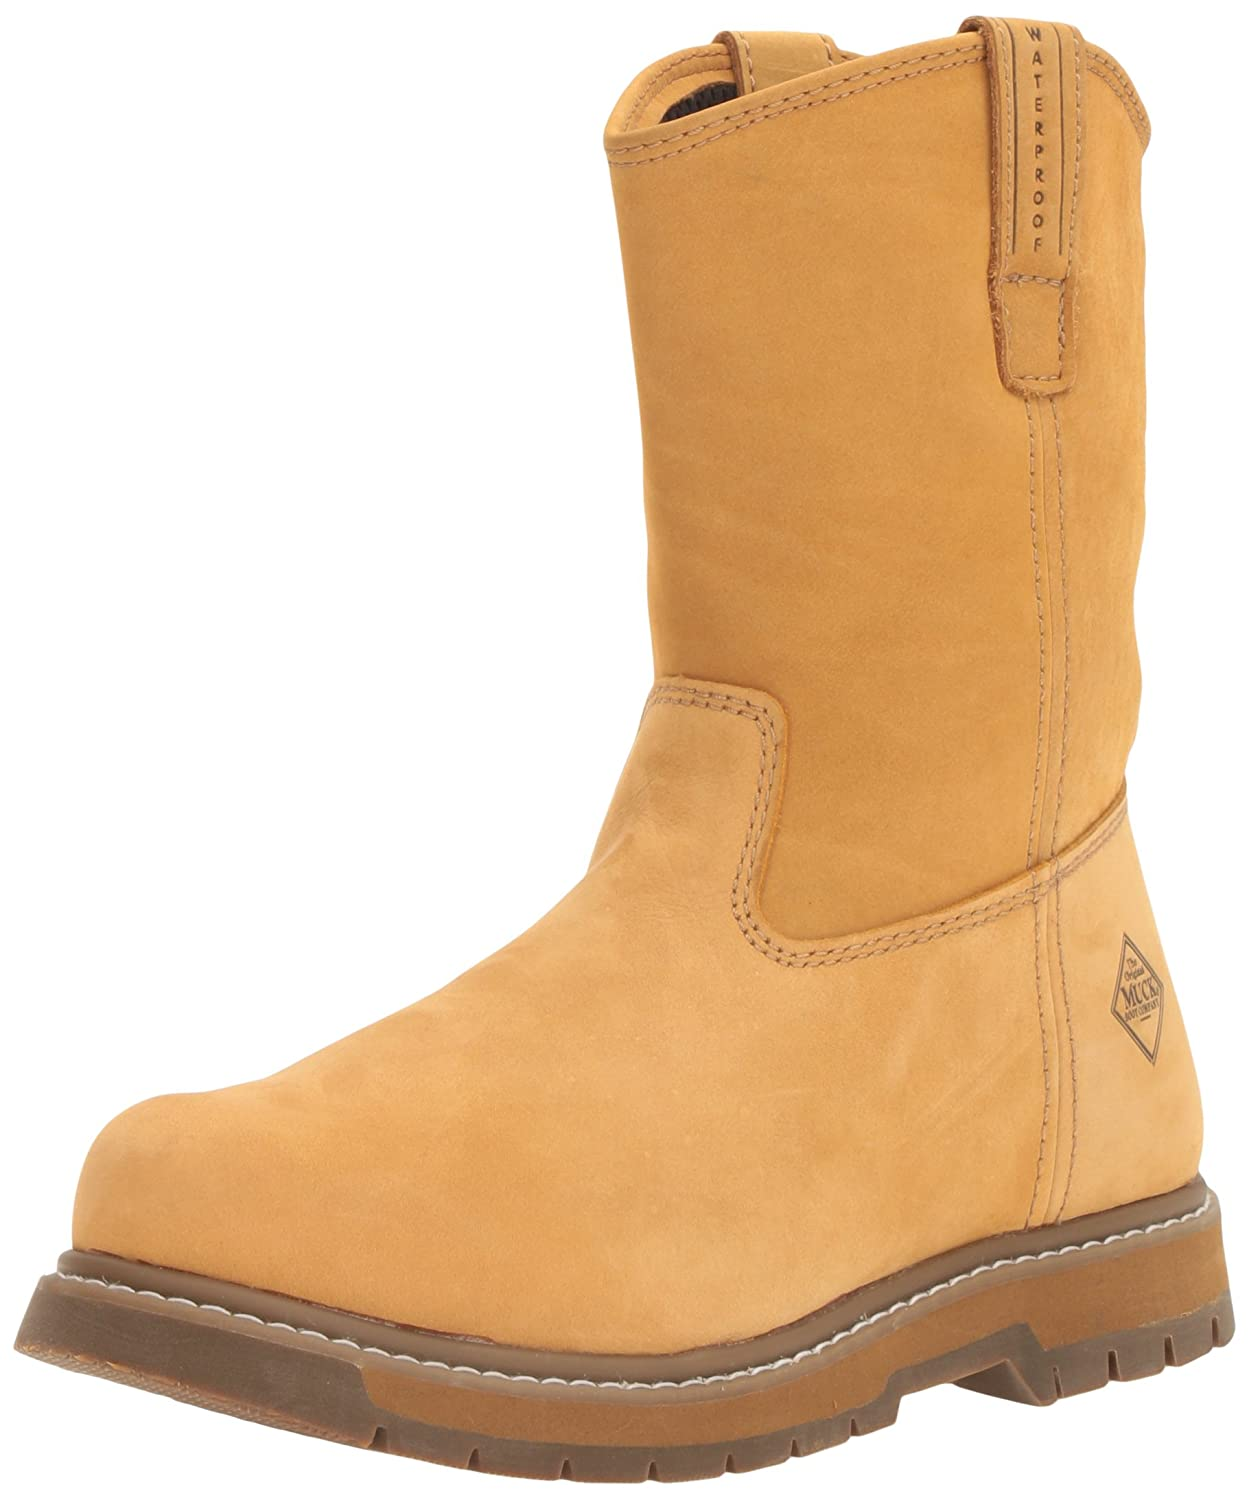 Muck Boot メンズ Wheat/Leather 7 D(M) US 7 D(M) USWheat/Leather B00OOHAA3W